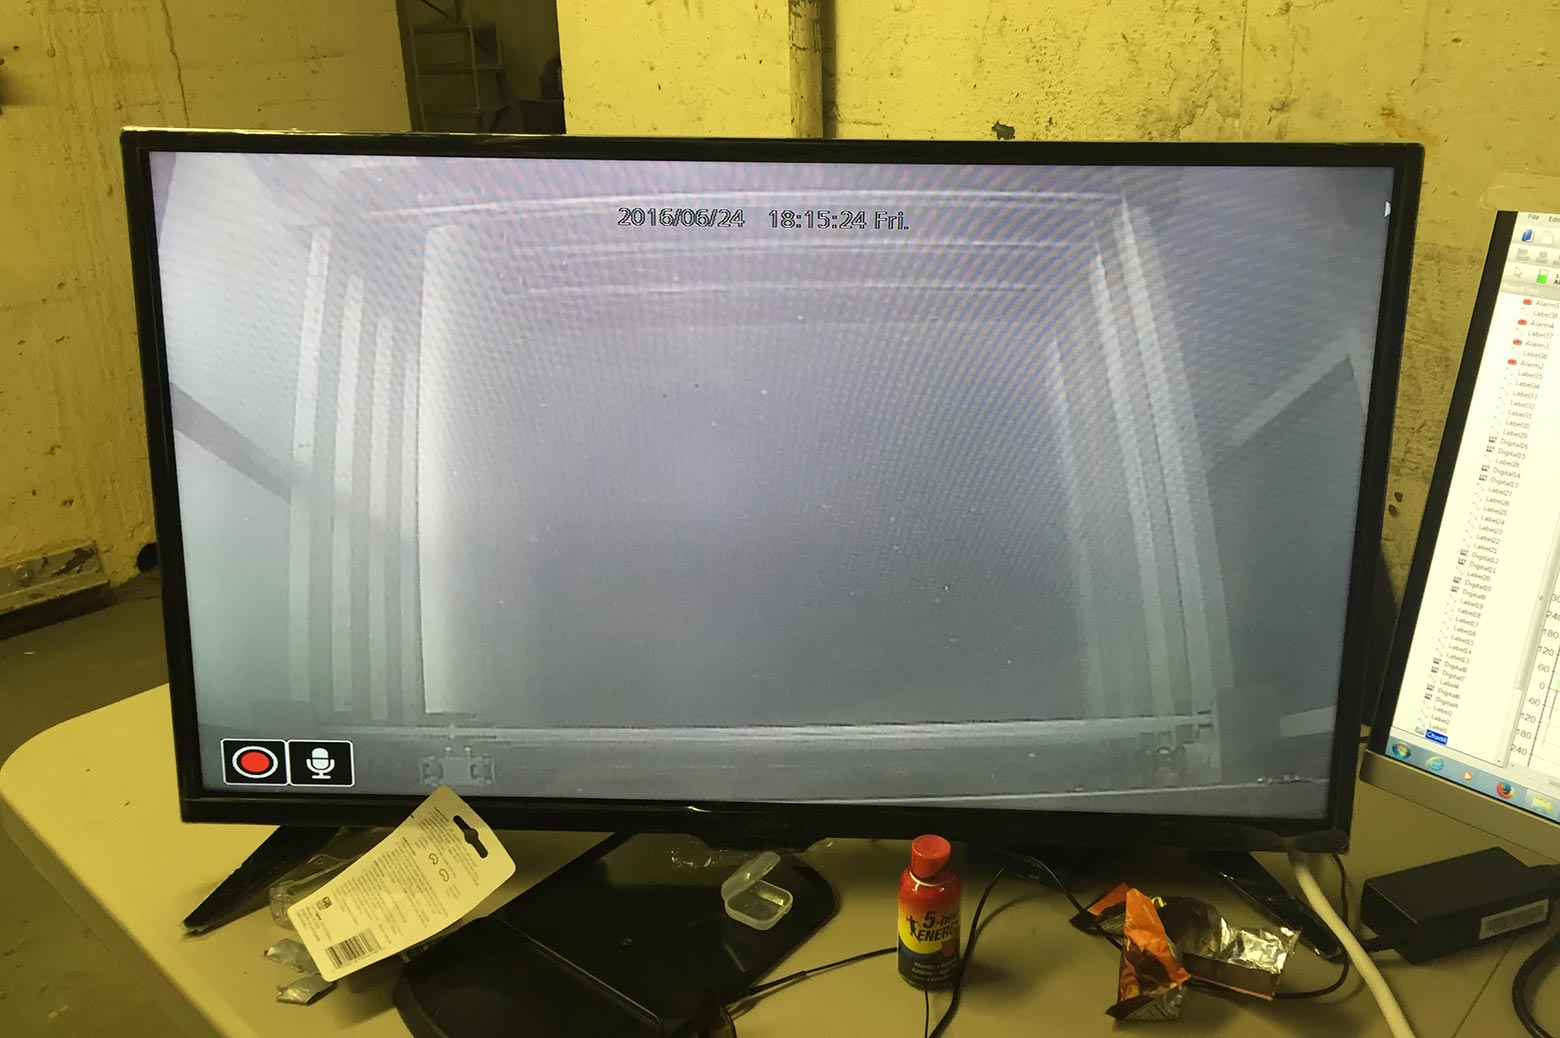 The VIVACE device is visible on-screen.